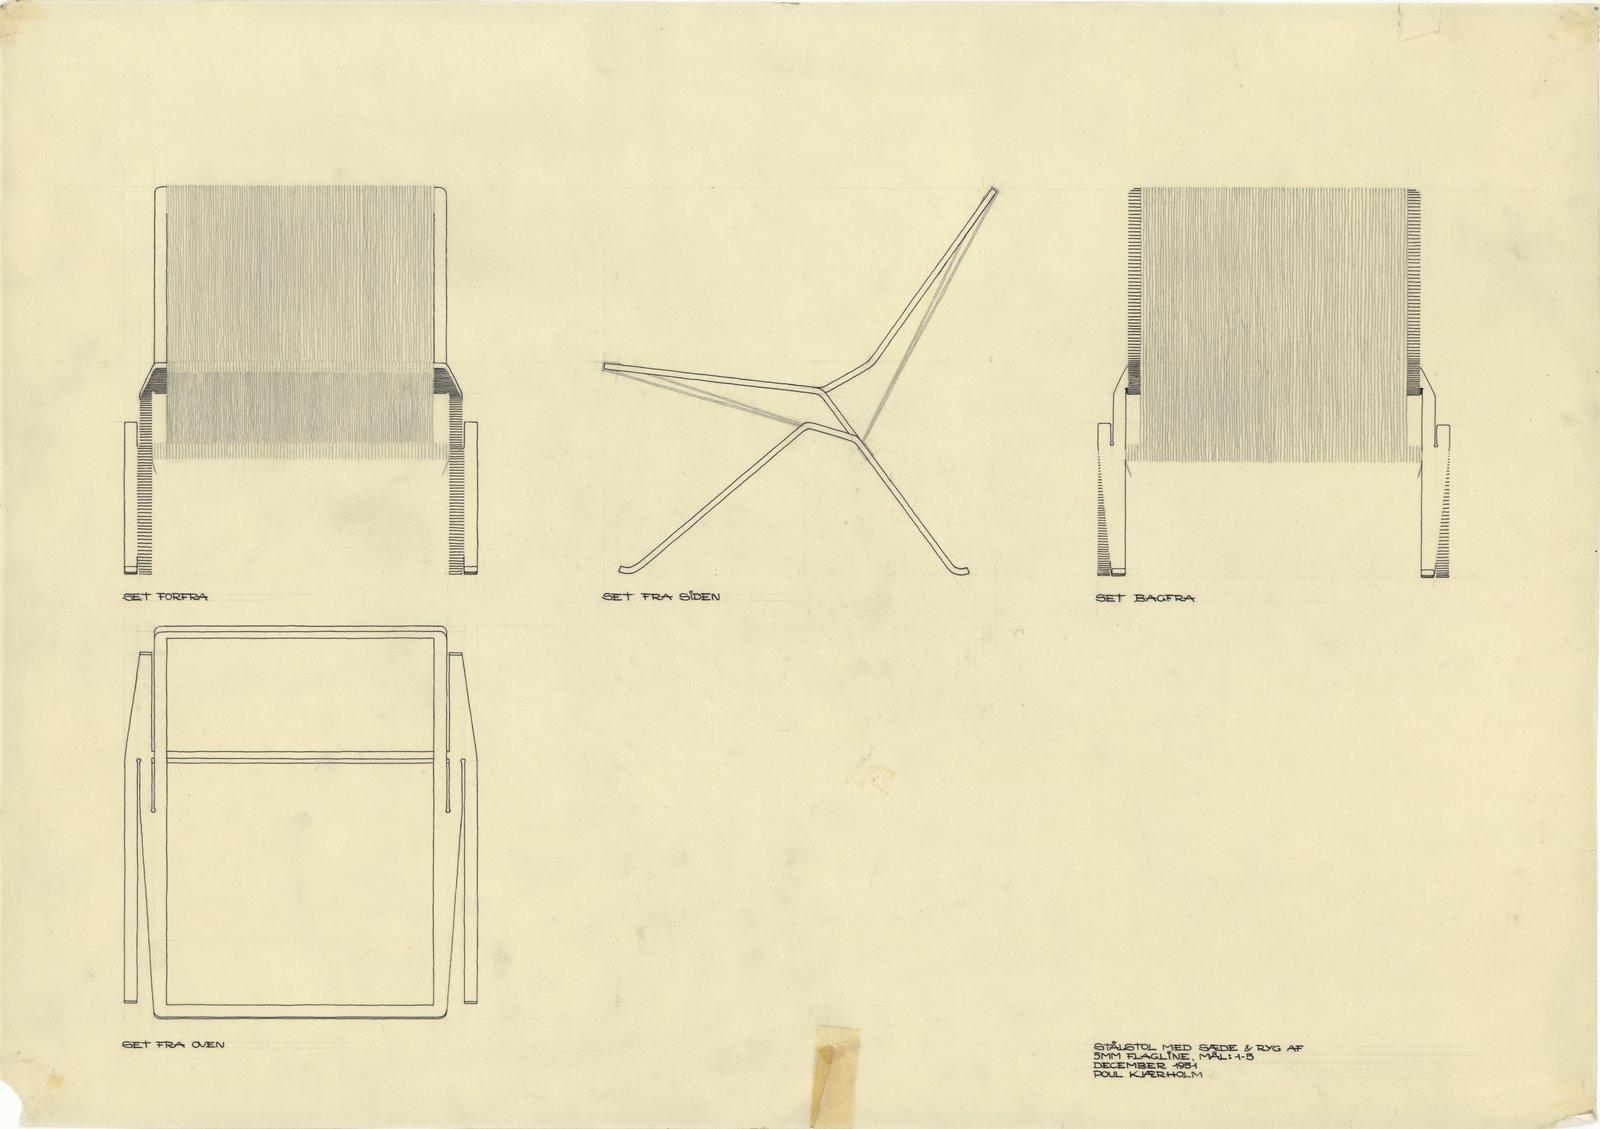 In 1951, the 23-year-old Kjærholm completed his first chair that would go into production: the PK25. The chair's frame is constructed using only one piece of steel and the seat is made from flag rope. This began the designer's obsession with just focusing on the essentials to engineer his concepts into reality. The PK25 is bent from cuts made into the metal and the rope is woven very tight to provide support.  Photo 3 of 11 in 10 Things You Didn't Know About Poul Kjærholm